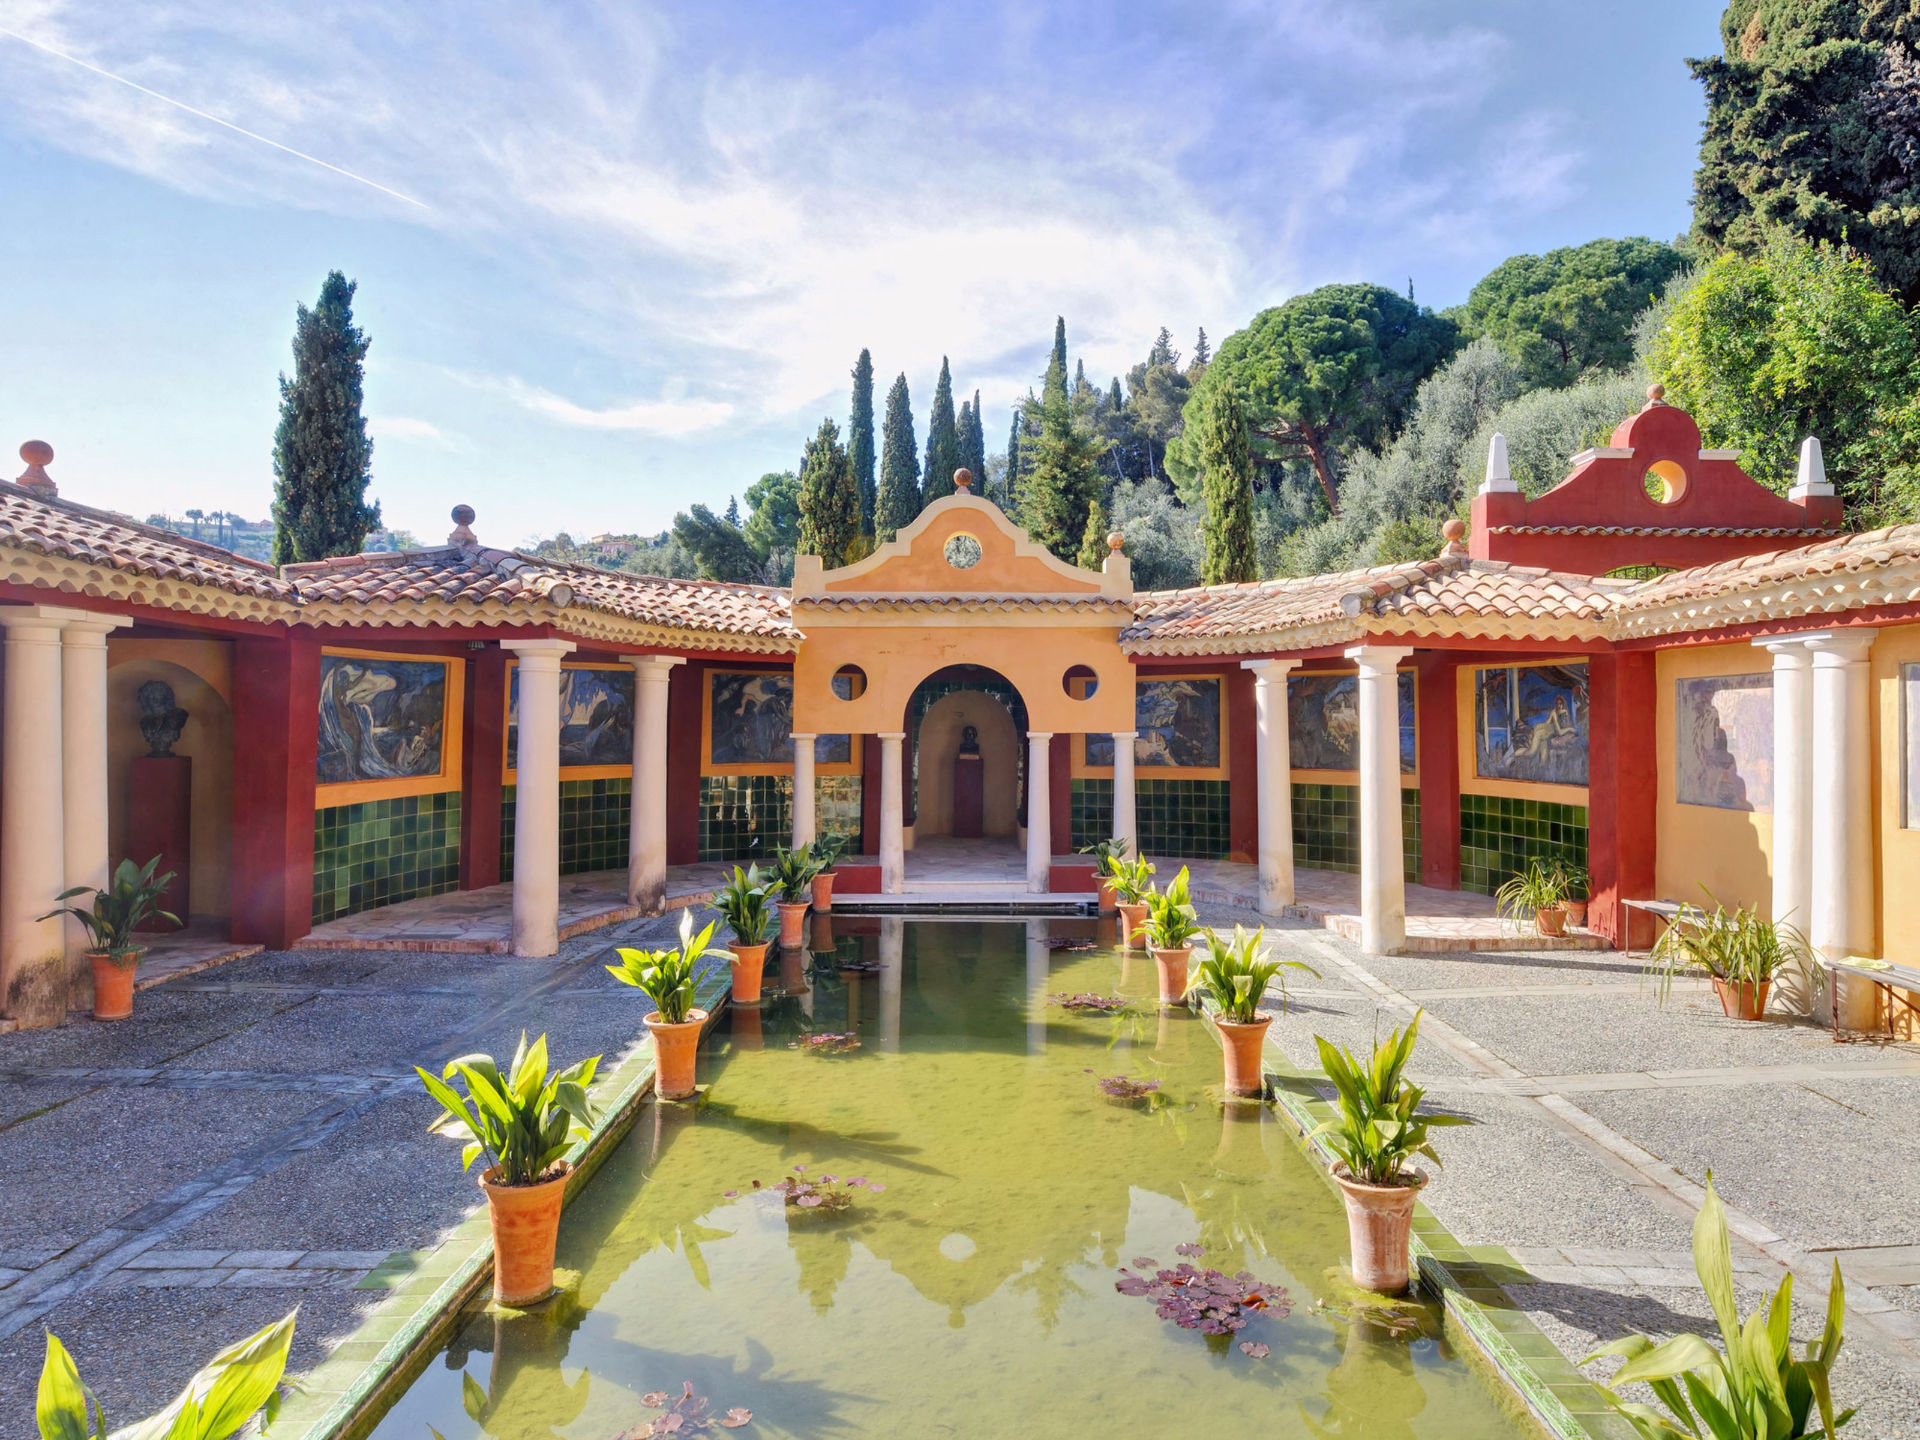 Single Family Home for Sale at Sumptuous florentine villa Other France, Other Areas In France, 06500 France